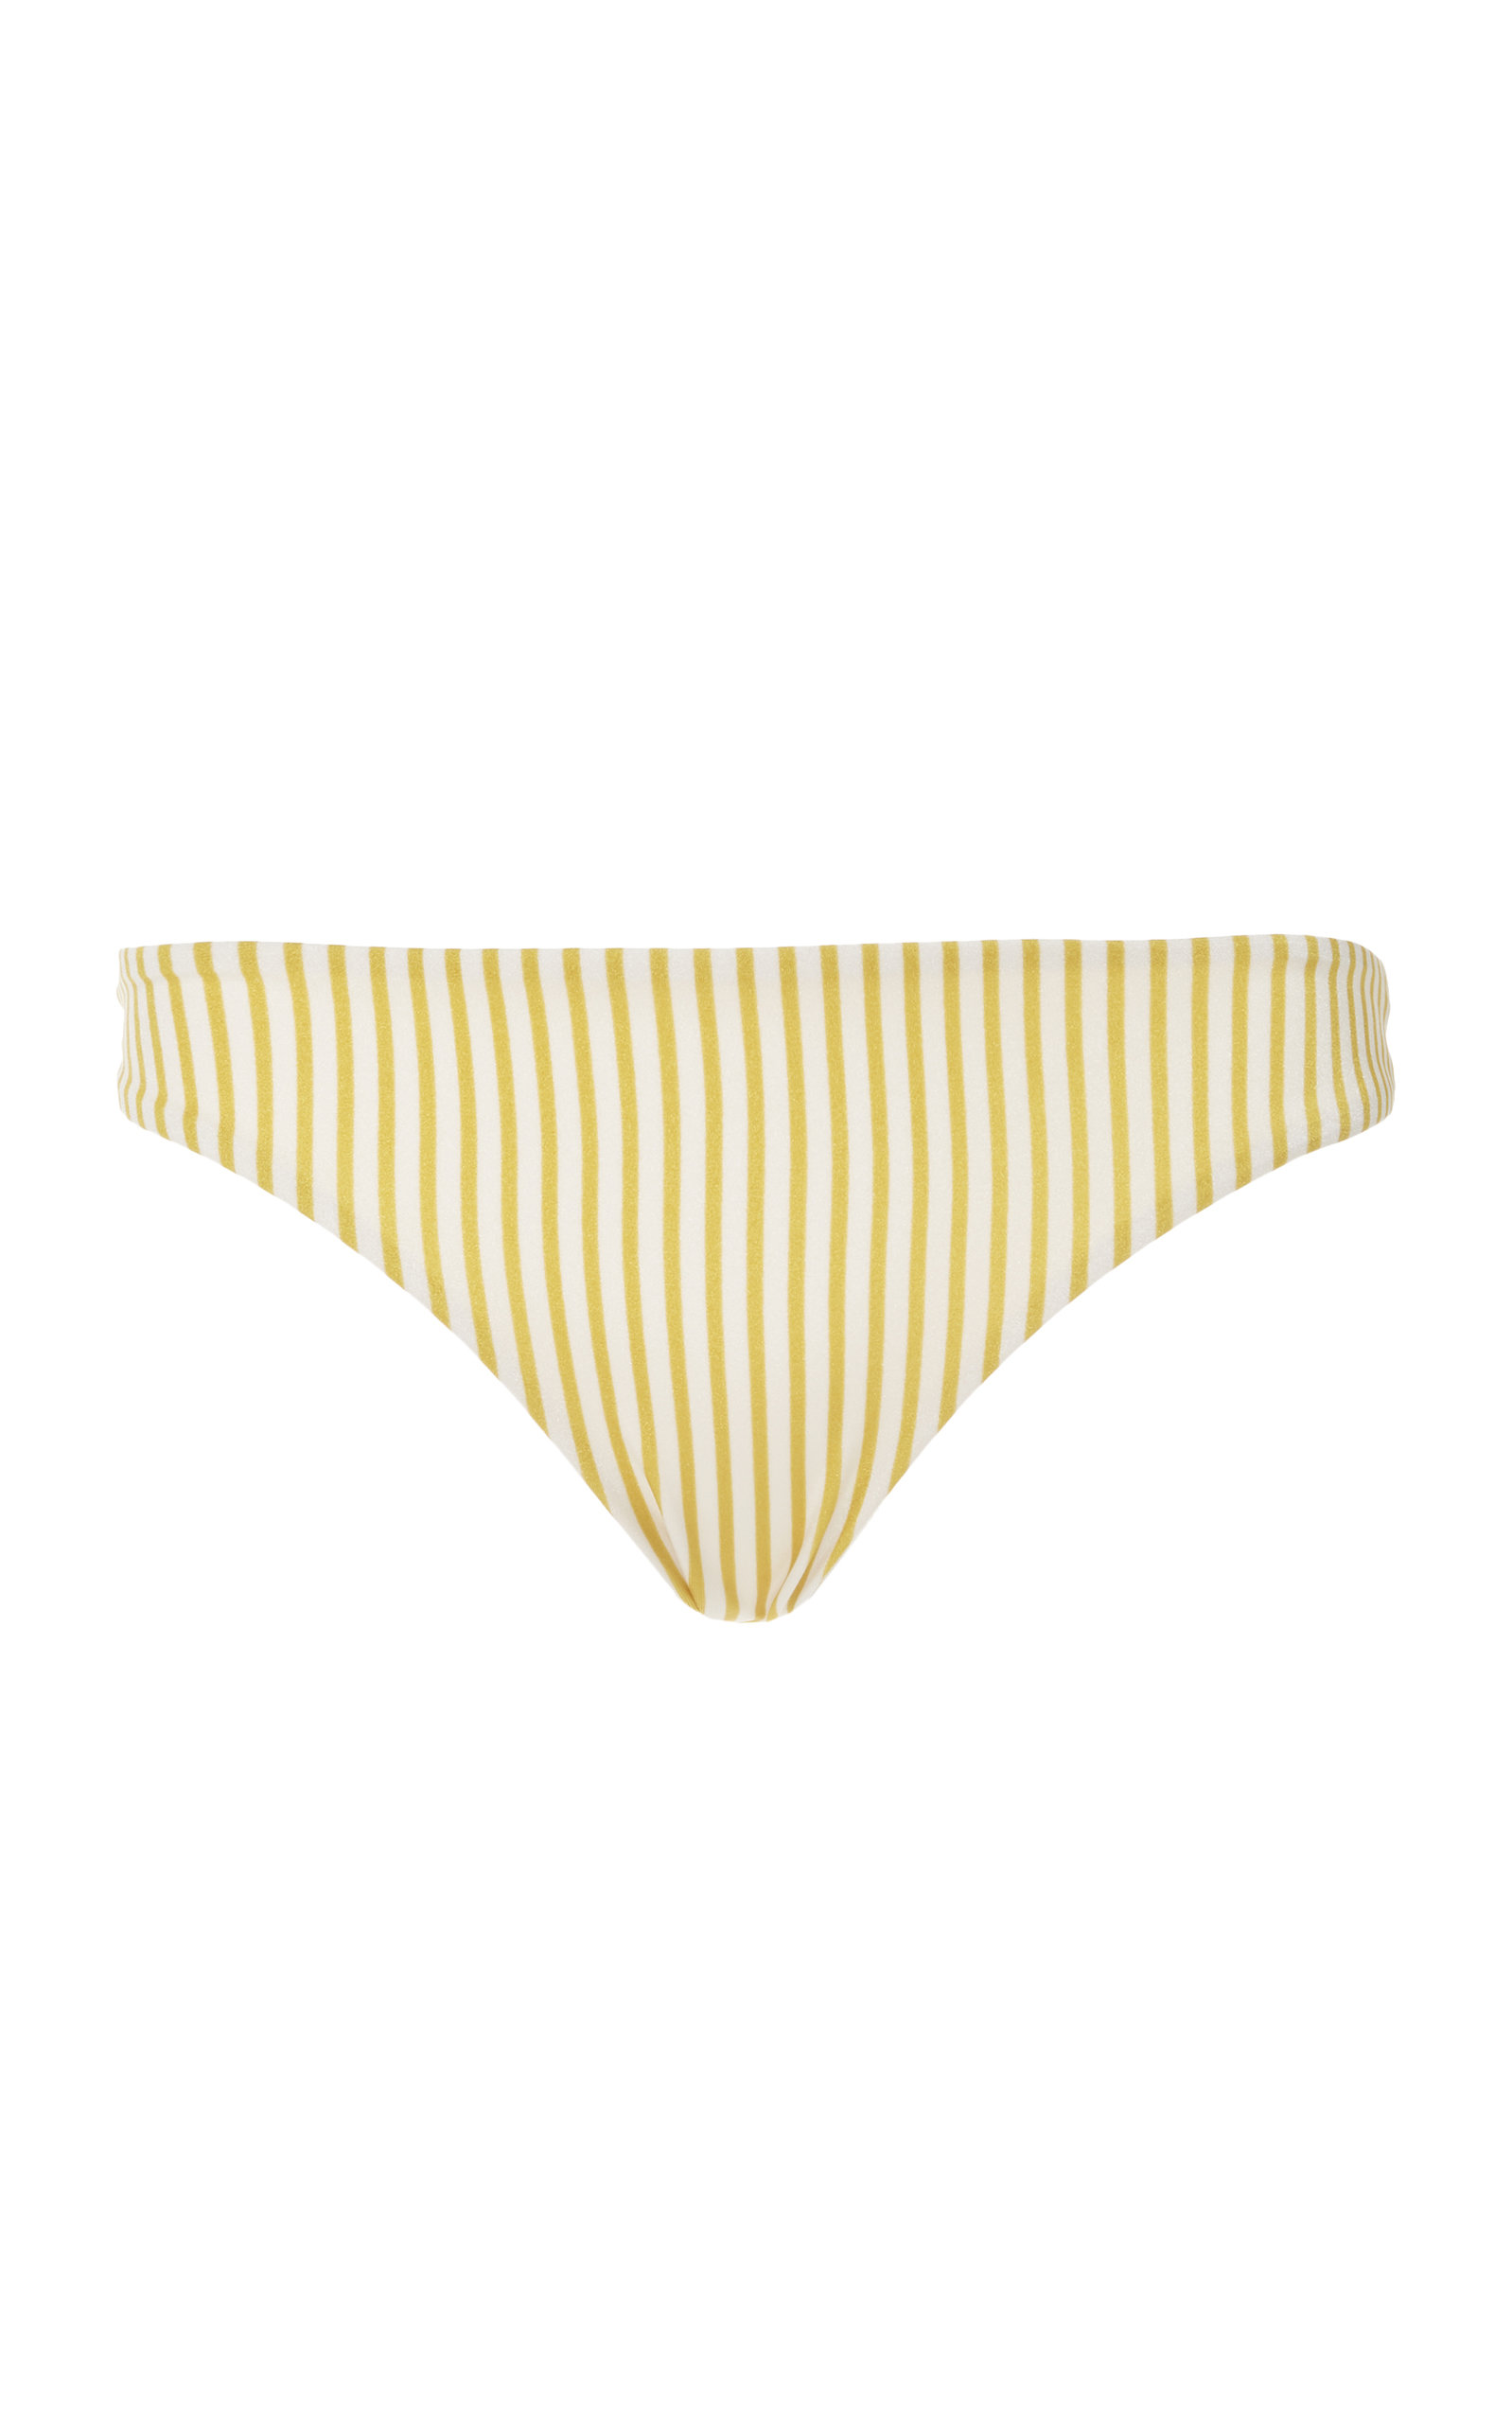 TORI PRAVER Mimi Ruched Cheeky Bottom in Yellow